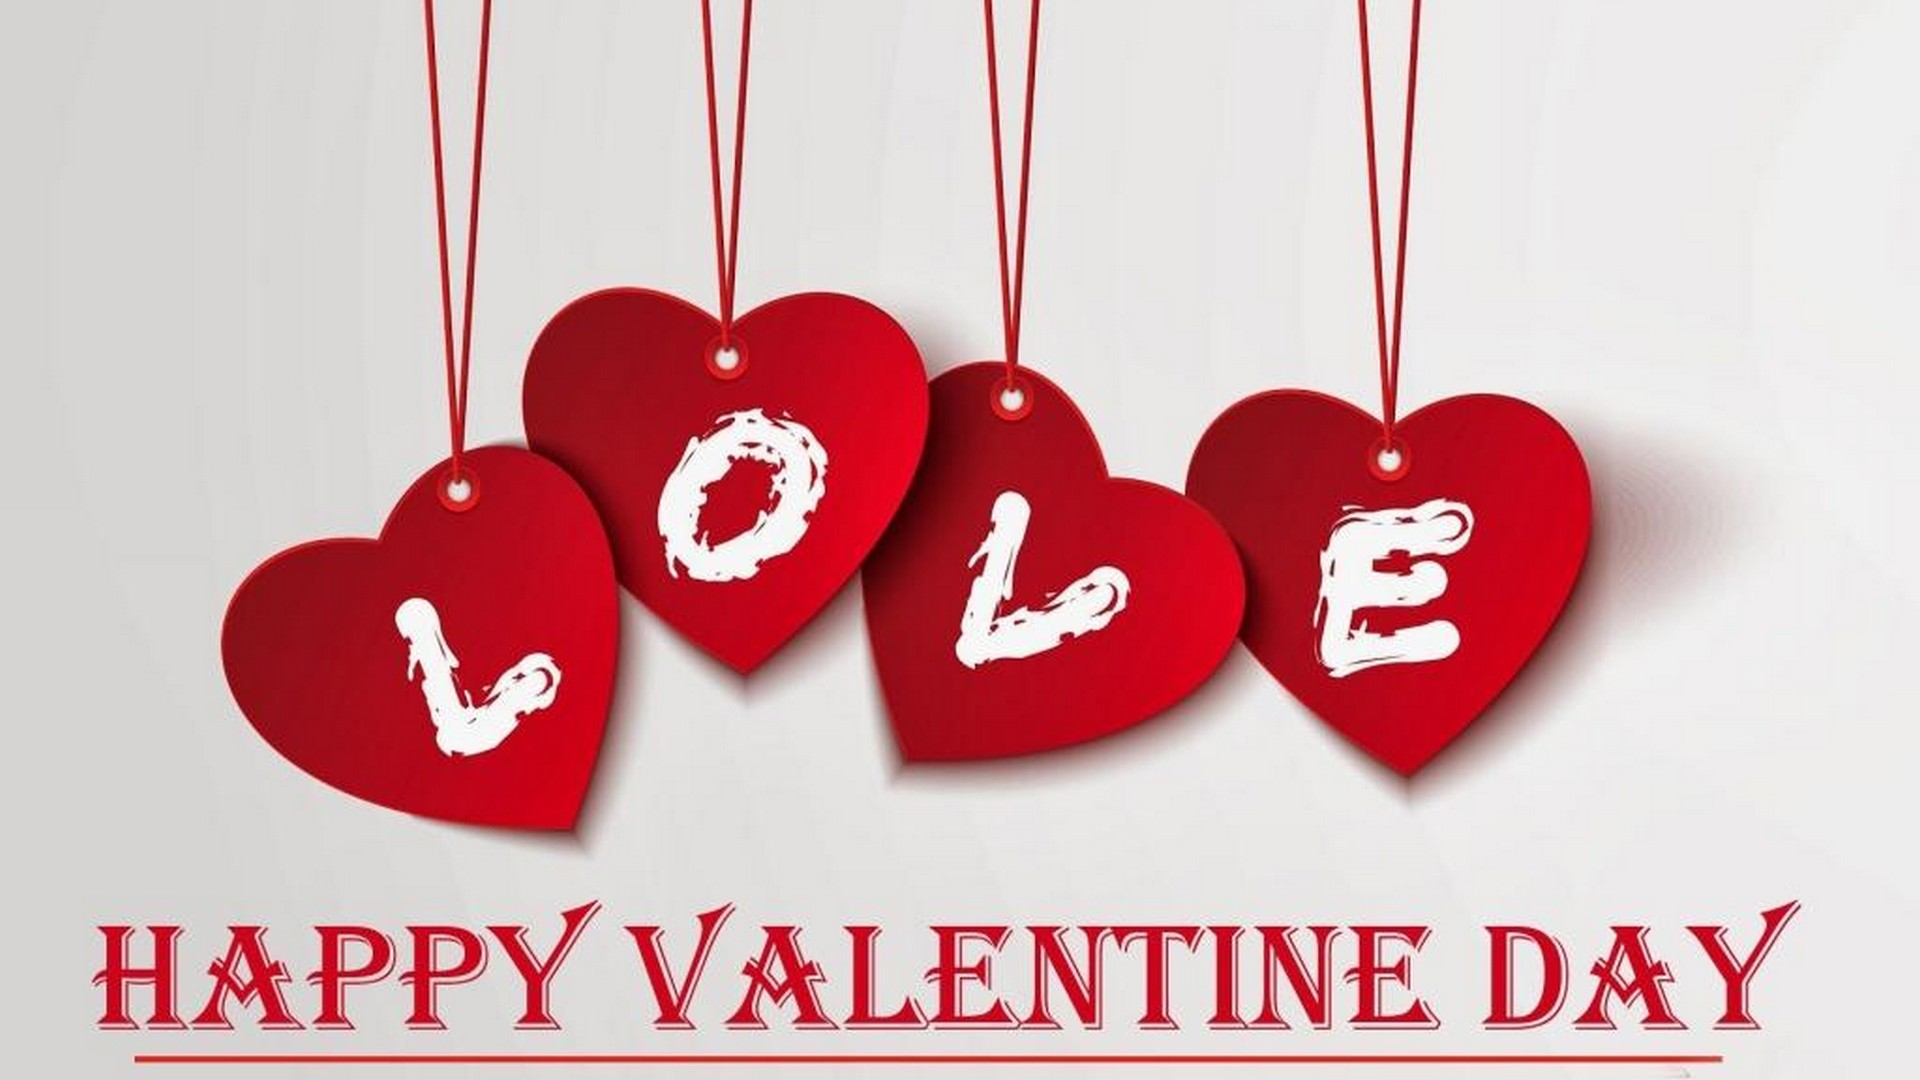 Cute Love Valentines Day Wallpaper 2021 Cute Wallpapers